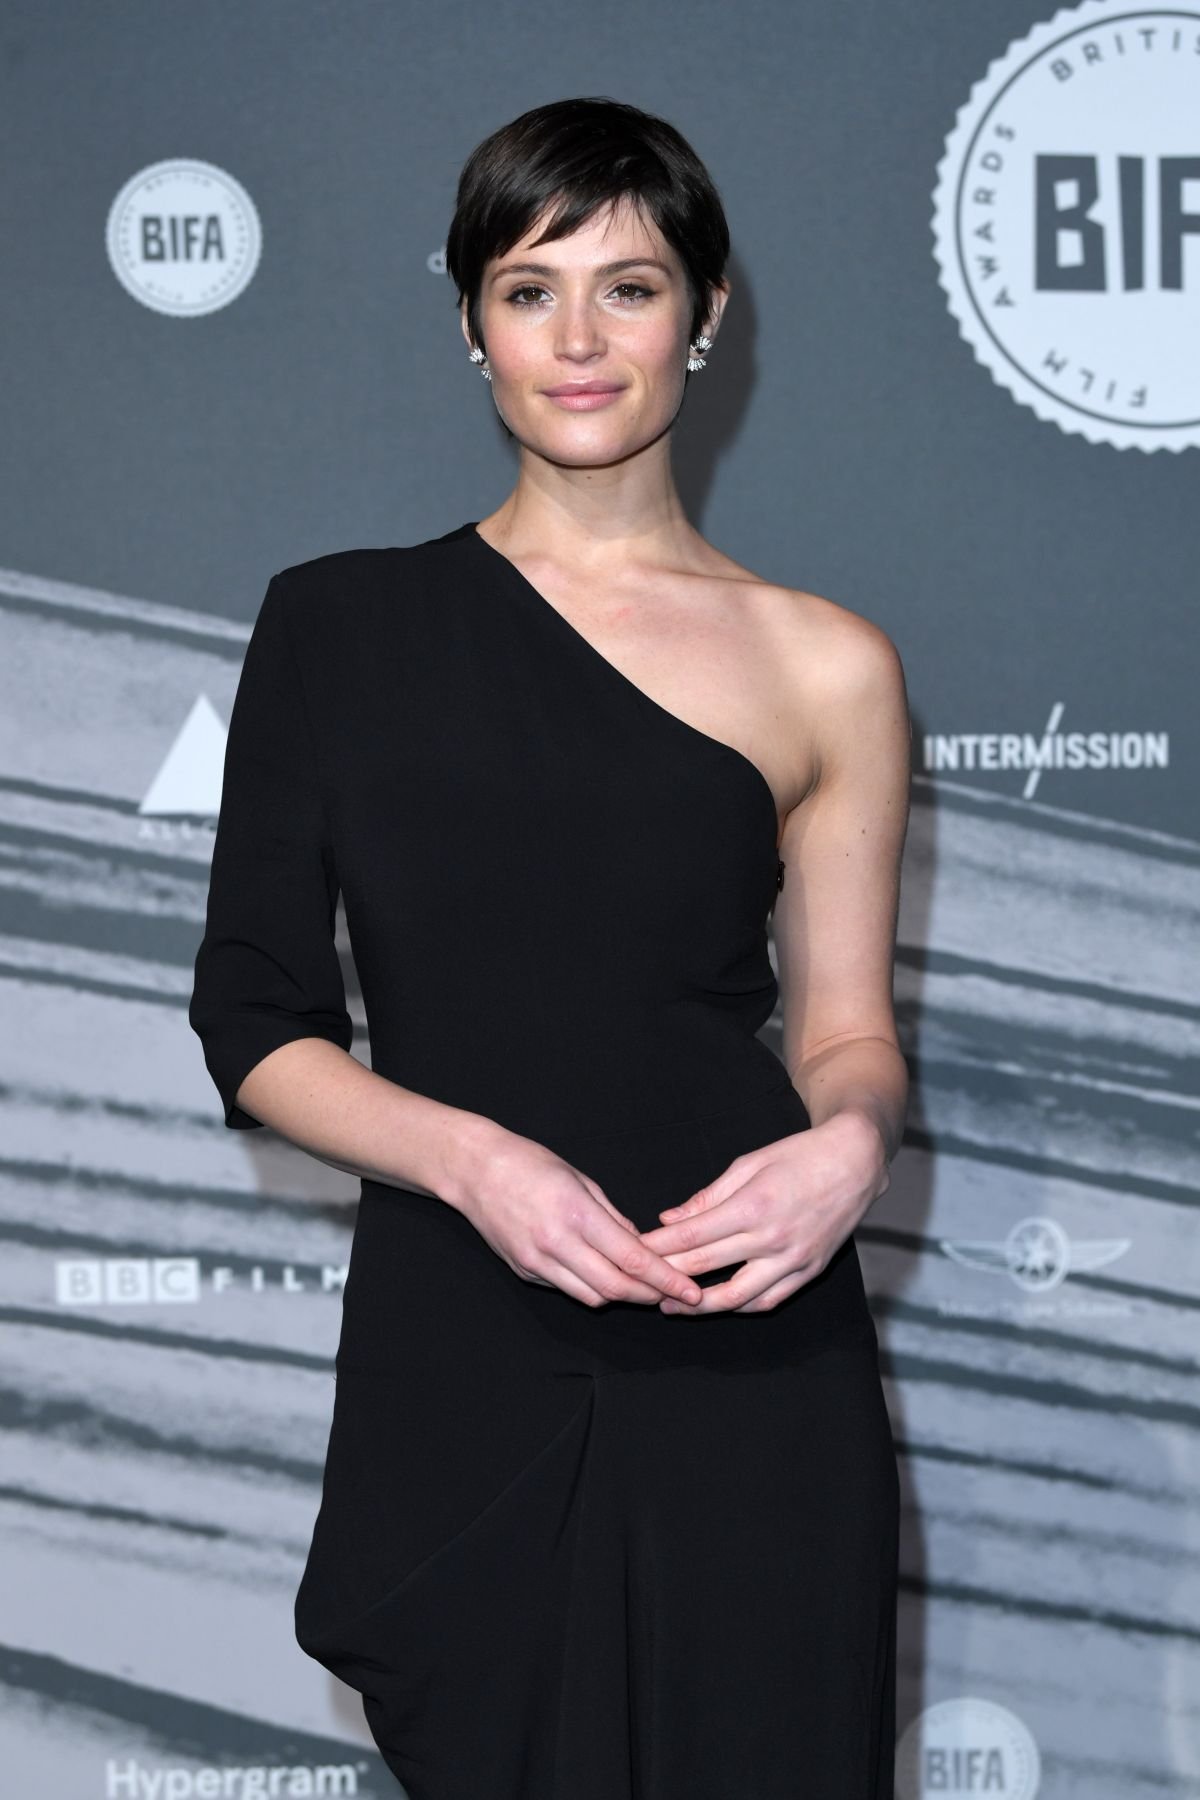 Gemma Arterton At British Independent Film Awards In